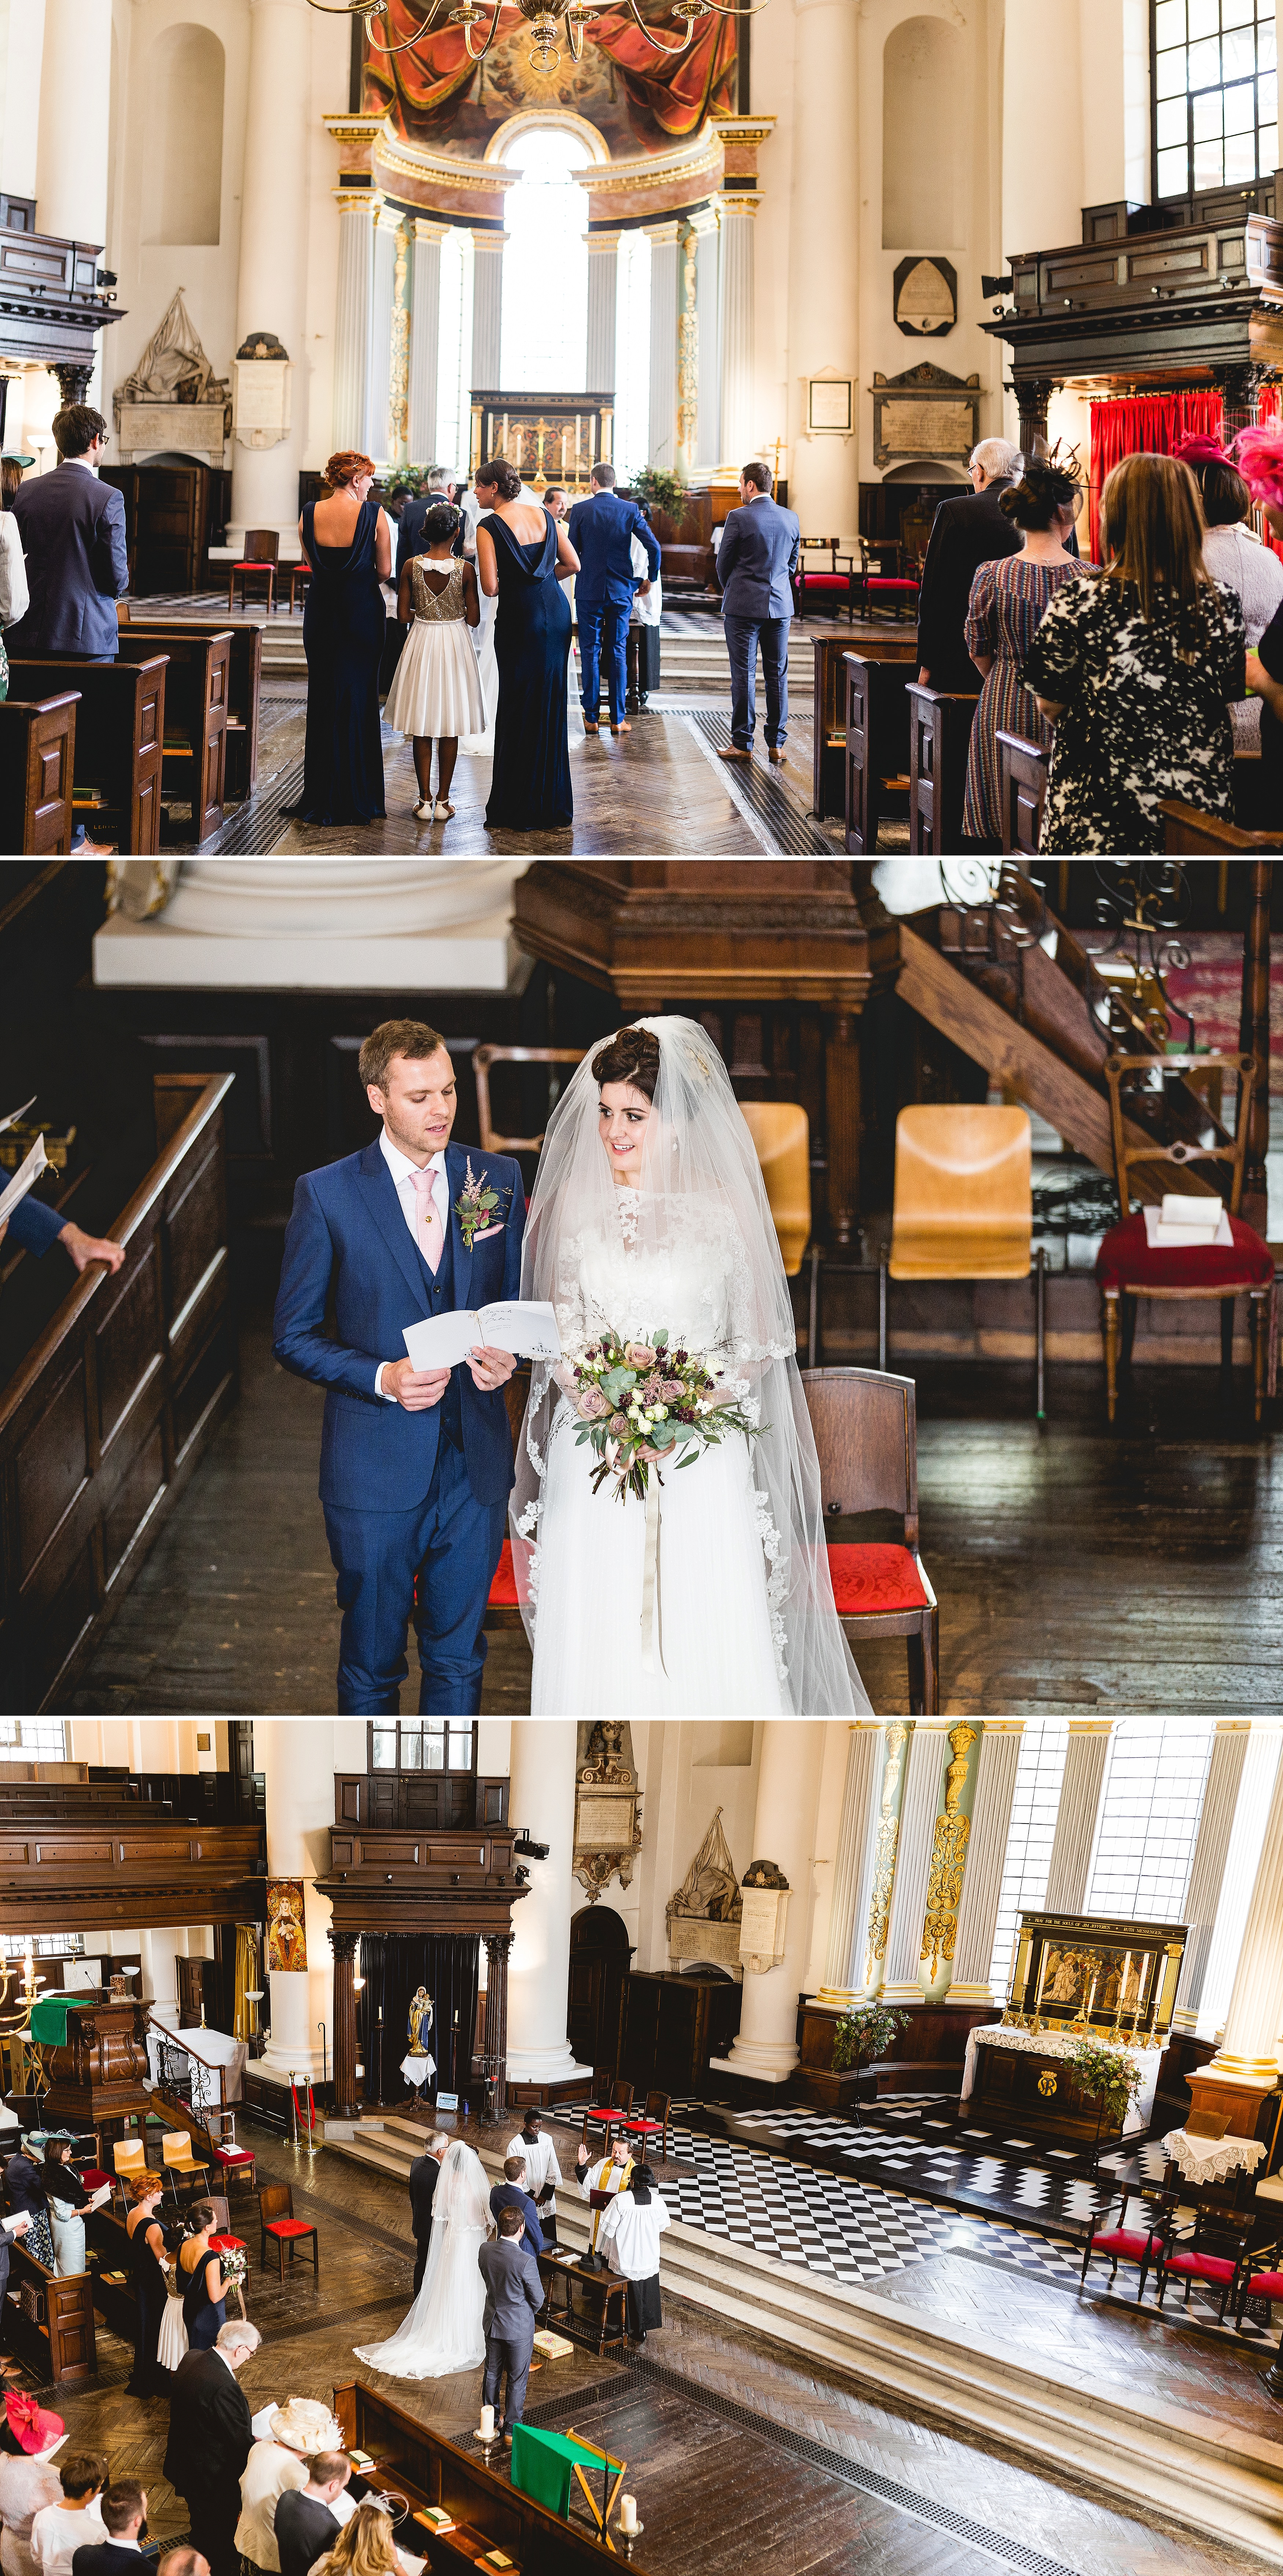 St Paul's church in Deptford wedding ceremony photos